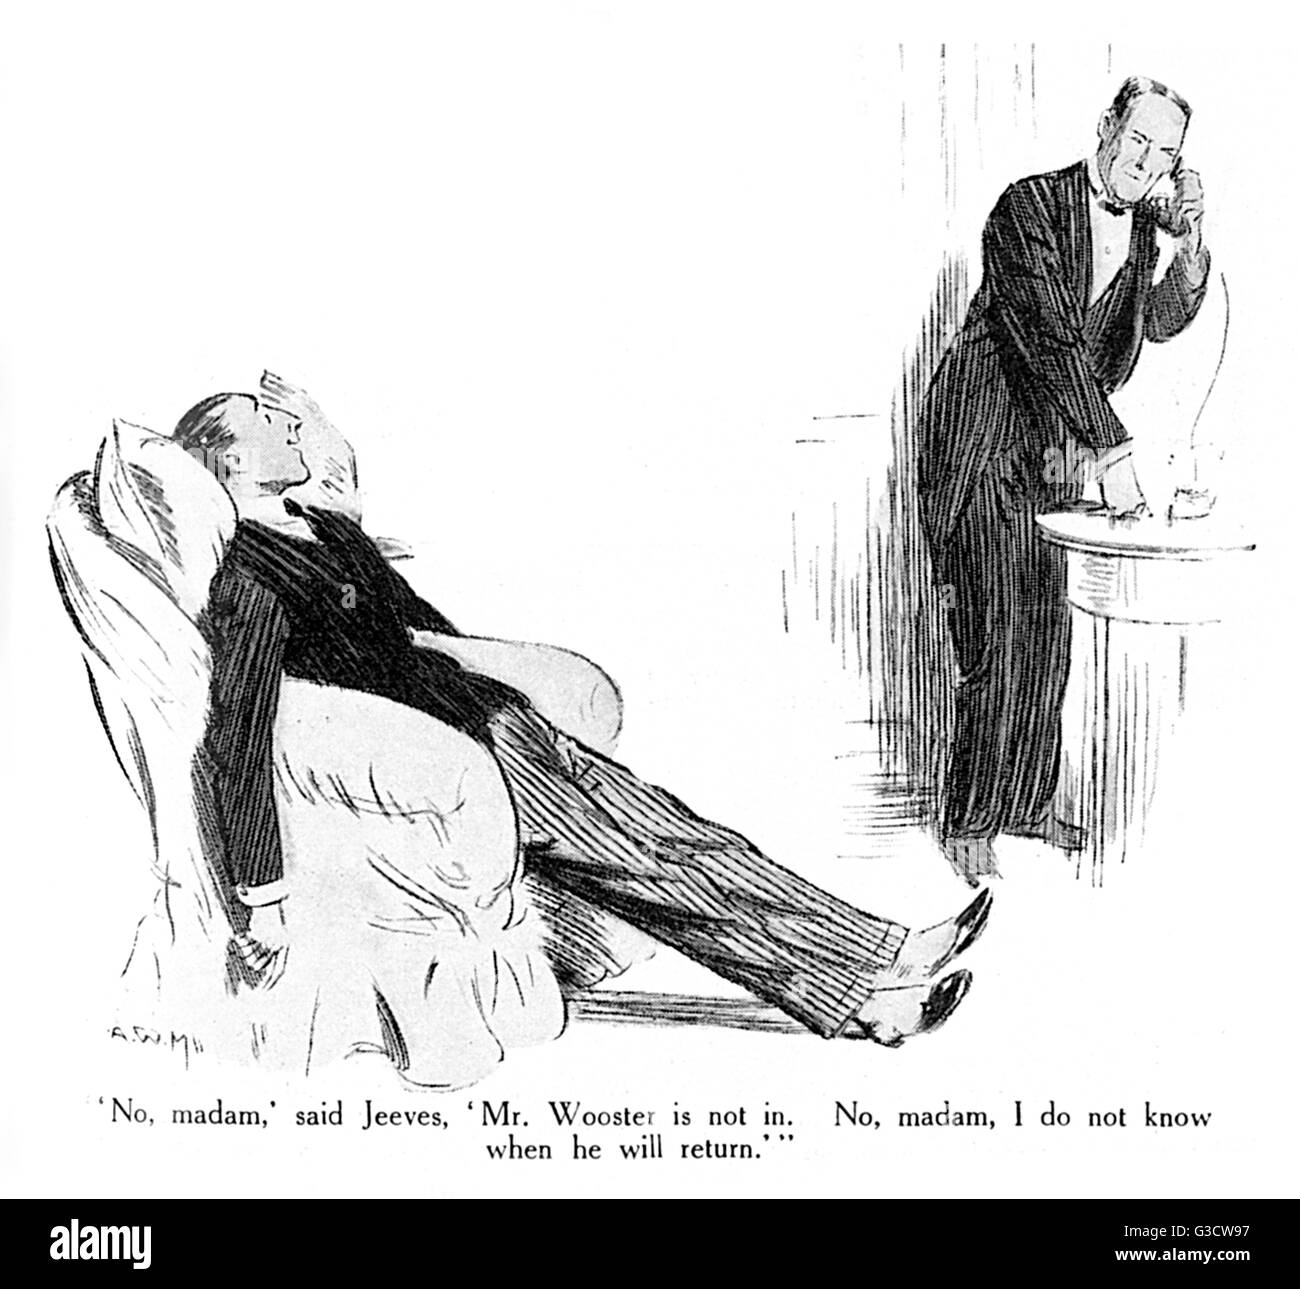 Jeeves and Wooster, P.G. Wodehouse story in The Strand, March 1922, entitled 'Sir Roderick Comes to Lunch'. - Stock Image